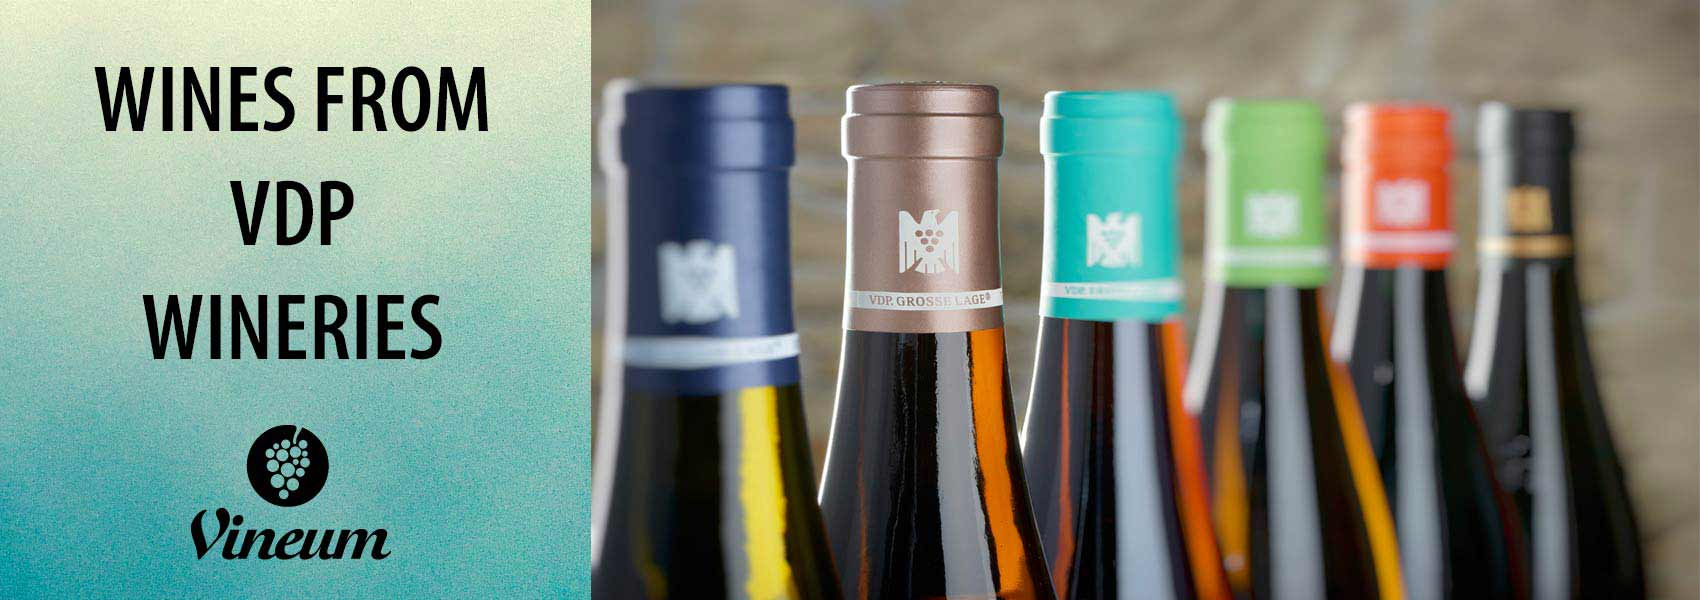 VDP Wines and Producers